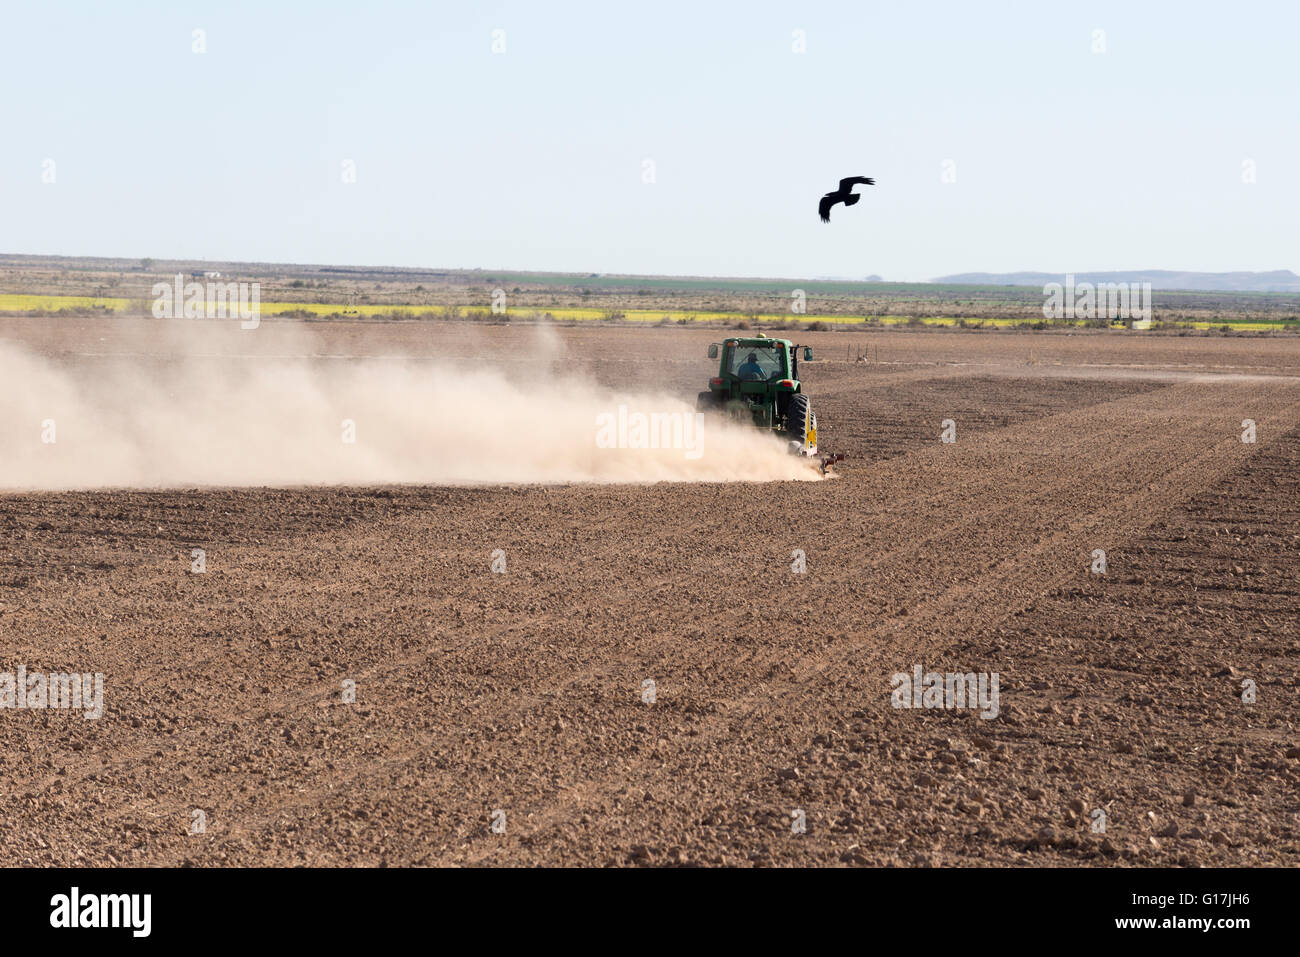 New mexico luna county columbus - Stock Photo Topsoil Blowing Away As A Farmer Tractors A Field In Luna County New Mexico